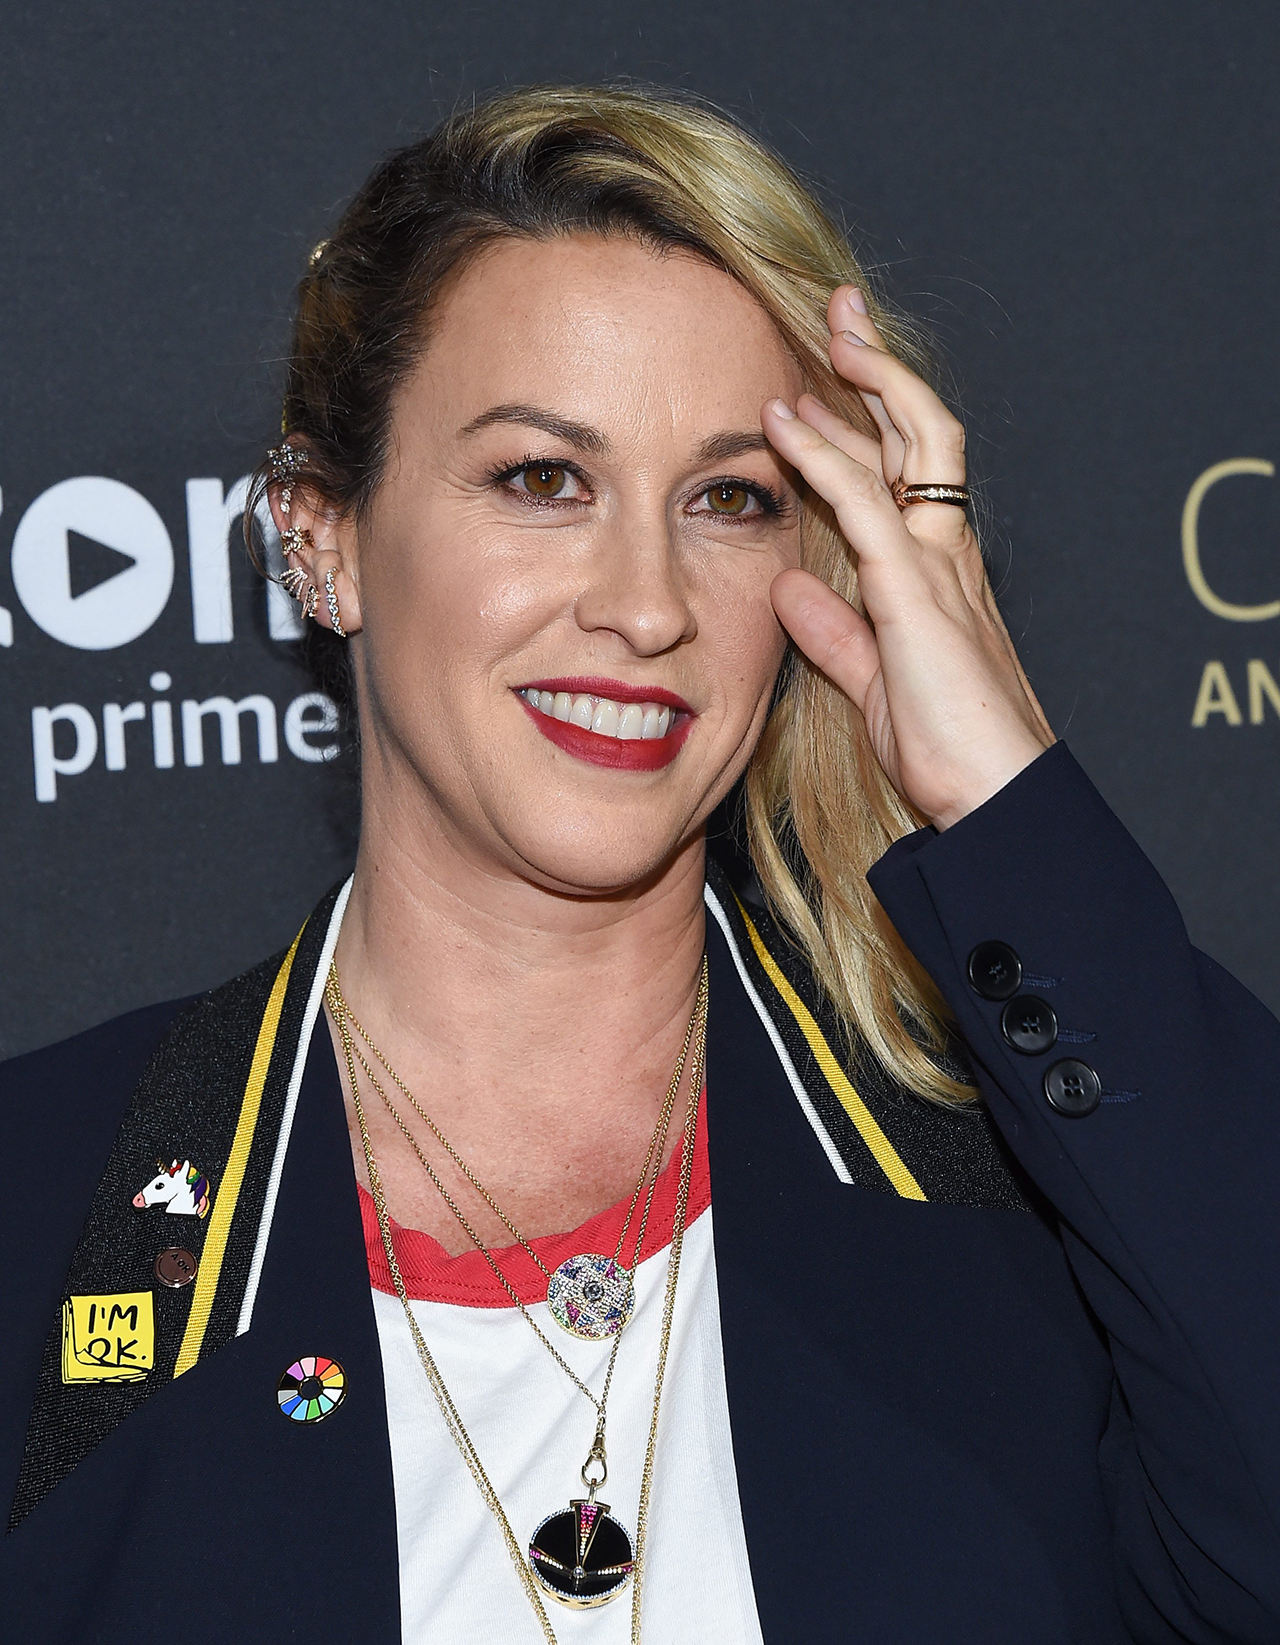 Alanis Morrisette is planning a musical based on Jagged Little Pill